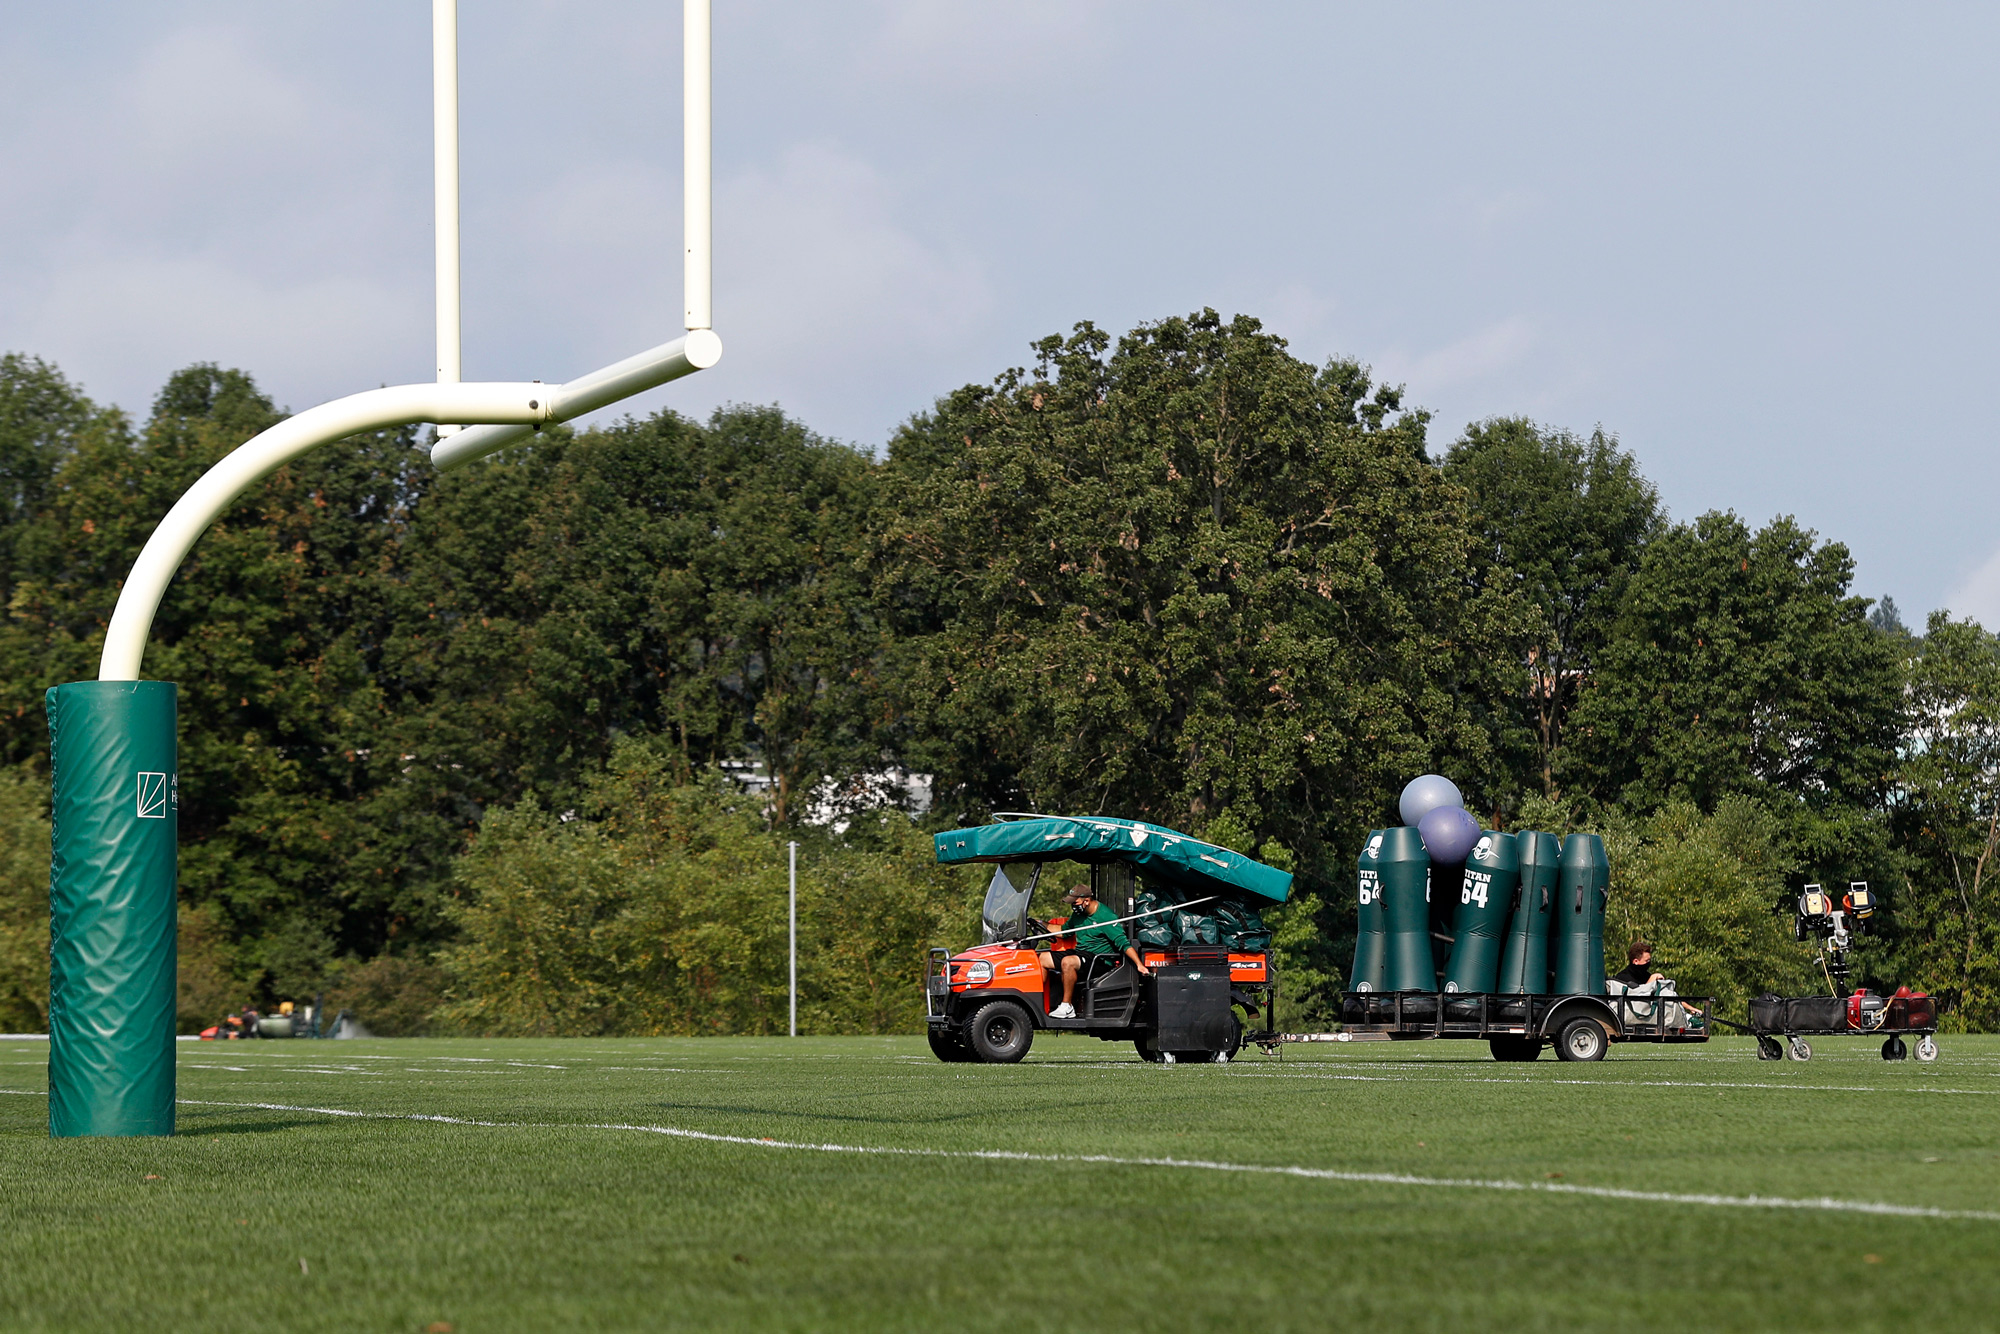 New York Jets personnel clear practice equipment after practice was canceled at the NFL football team's training camp in Florham Park, New Jersey, on August 27.